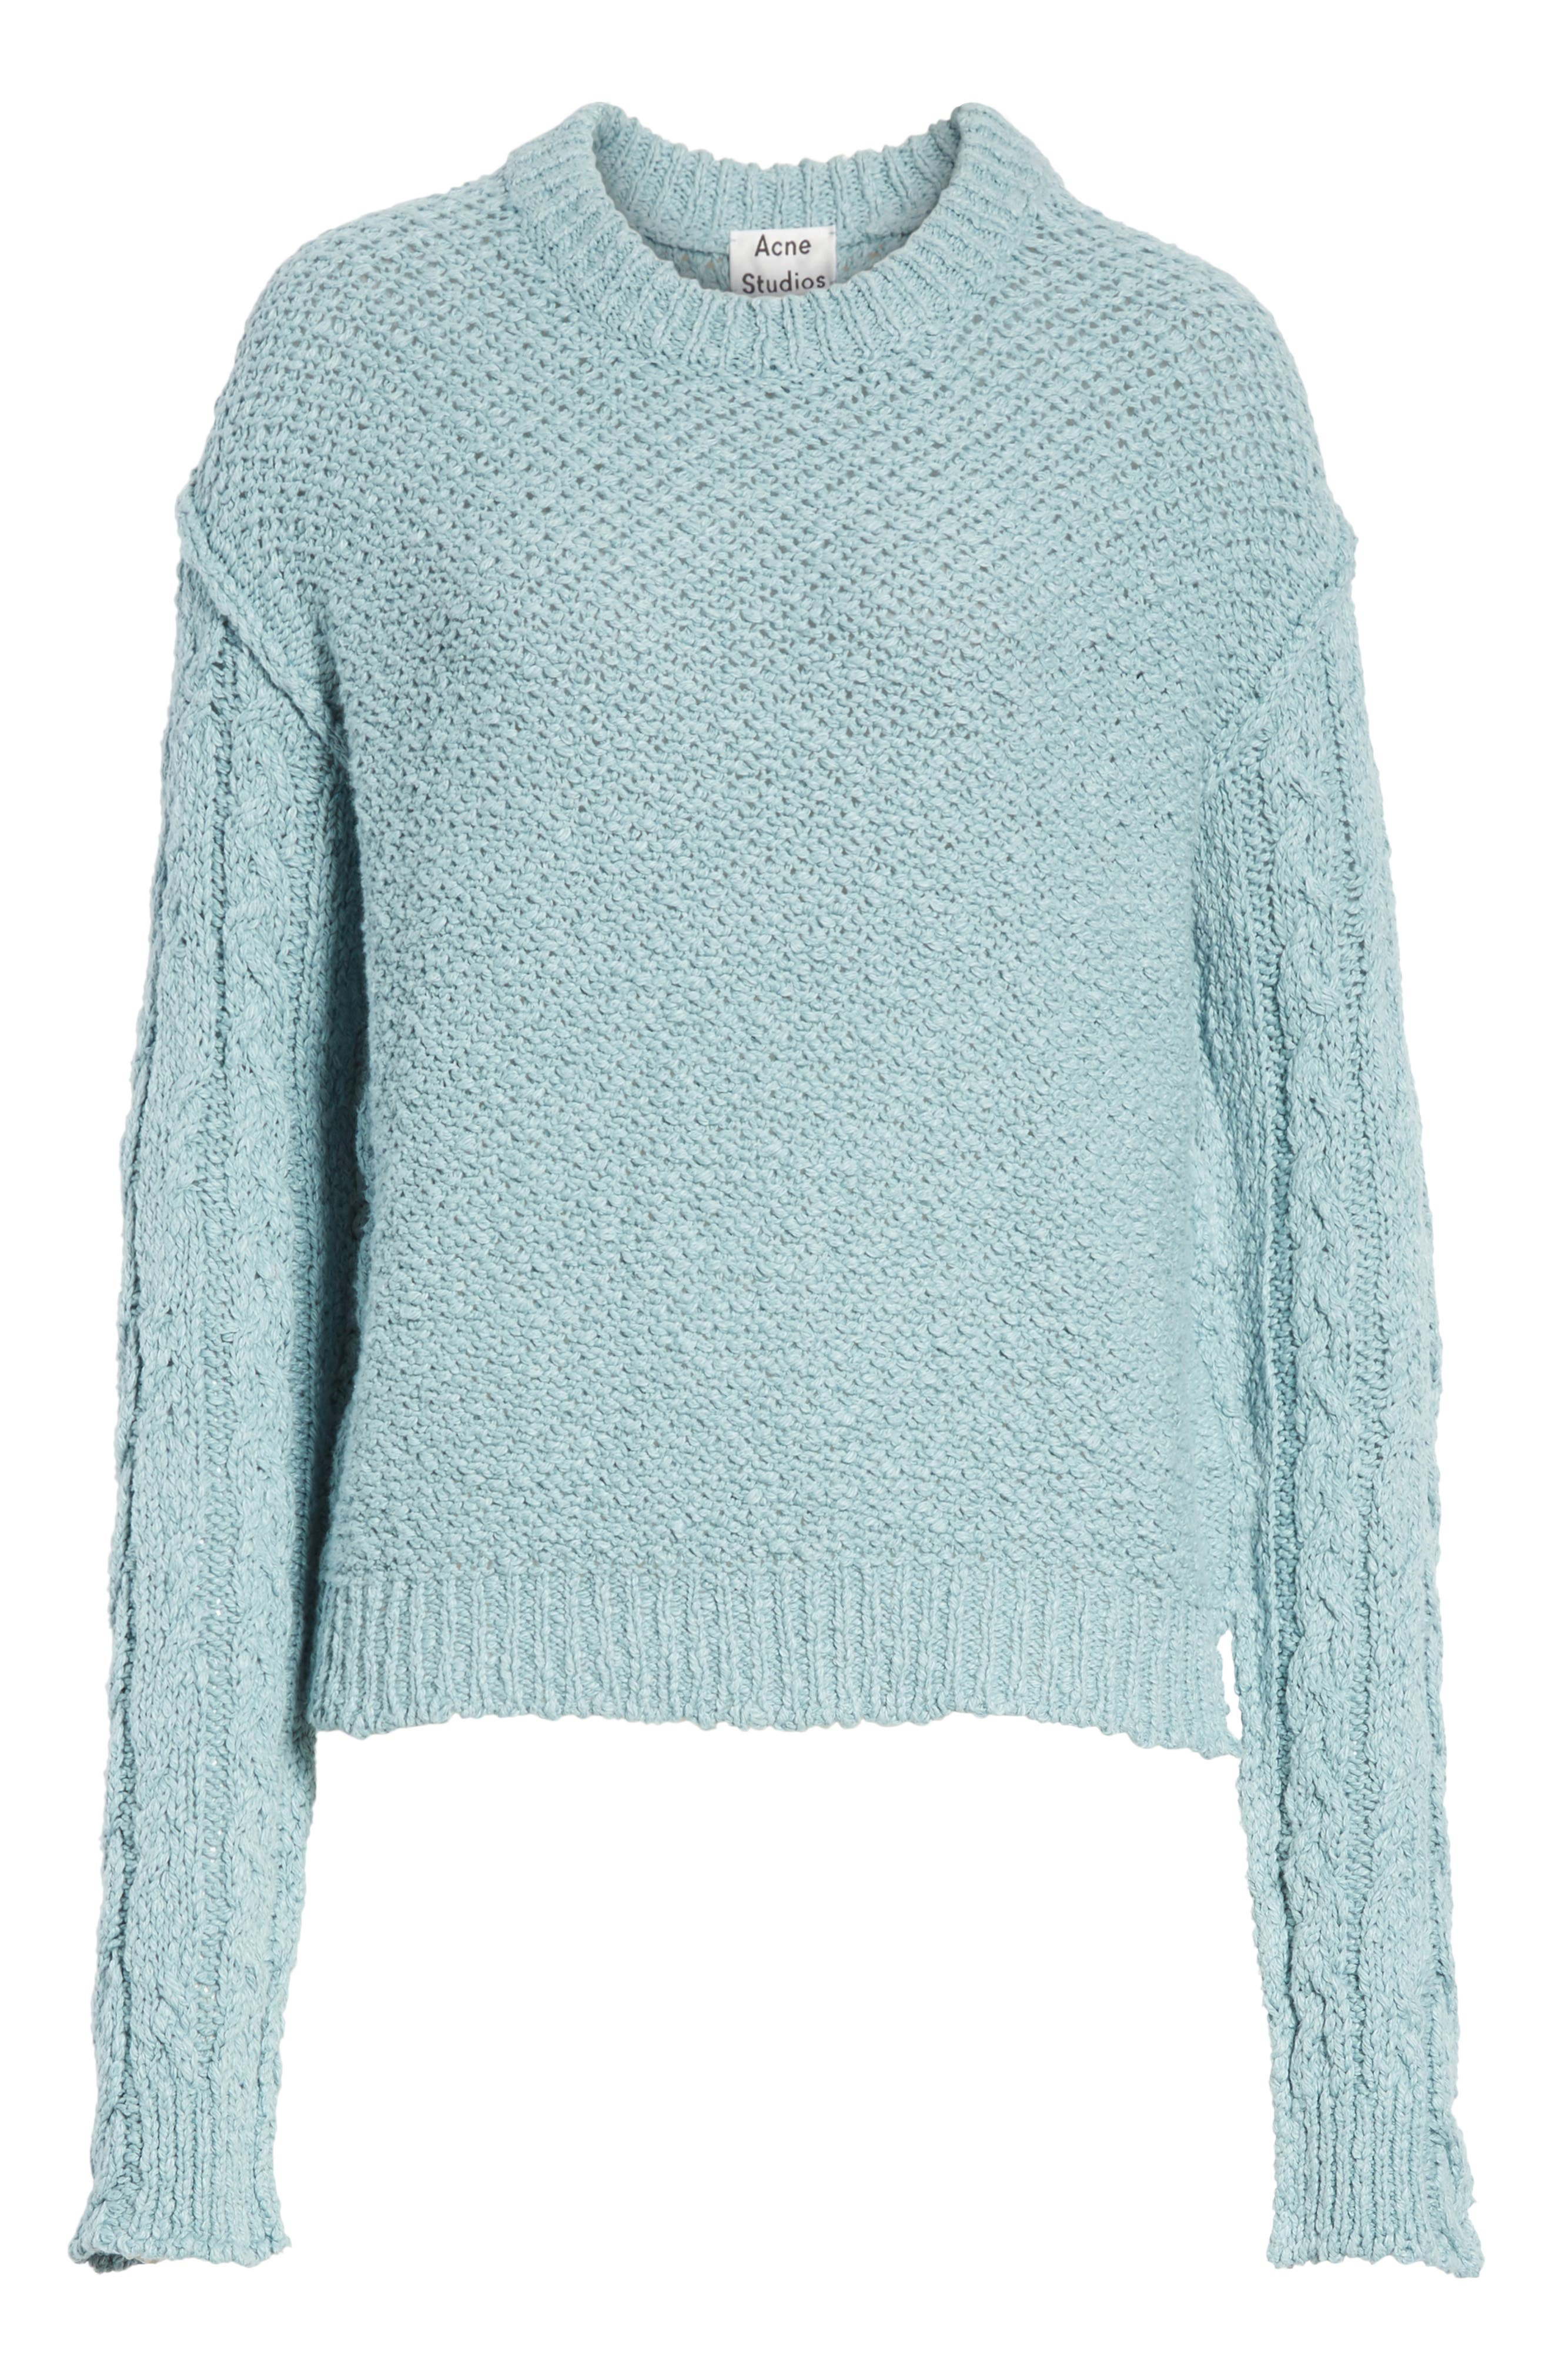 Hila Cable Sleeve Sweater,                             Alternate thumbnail 6, color,                             400